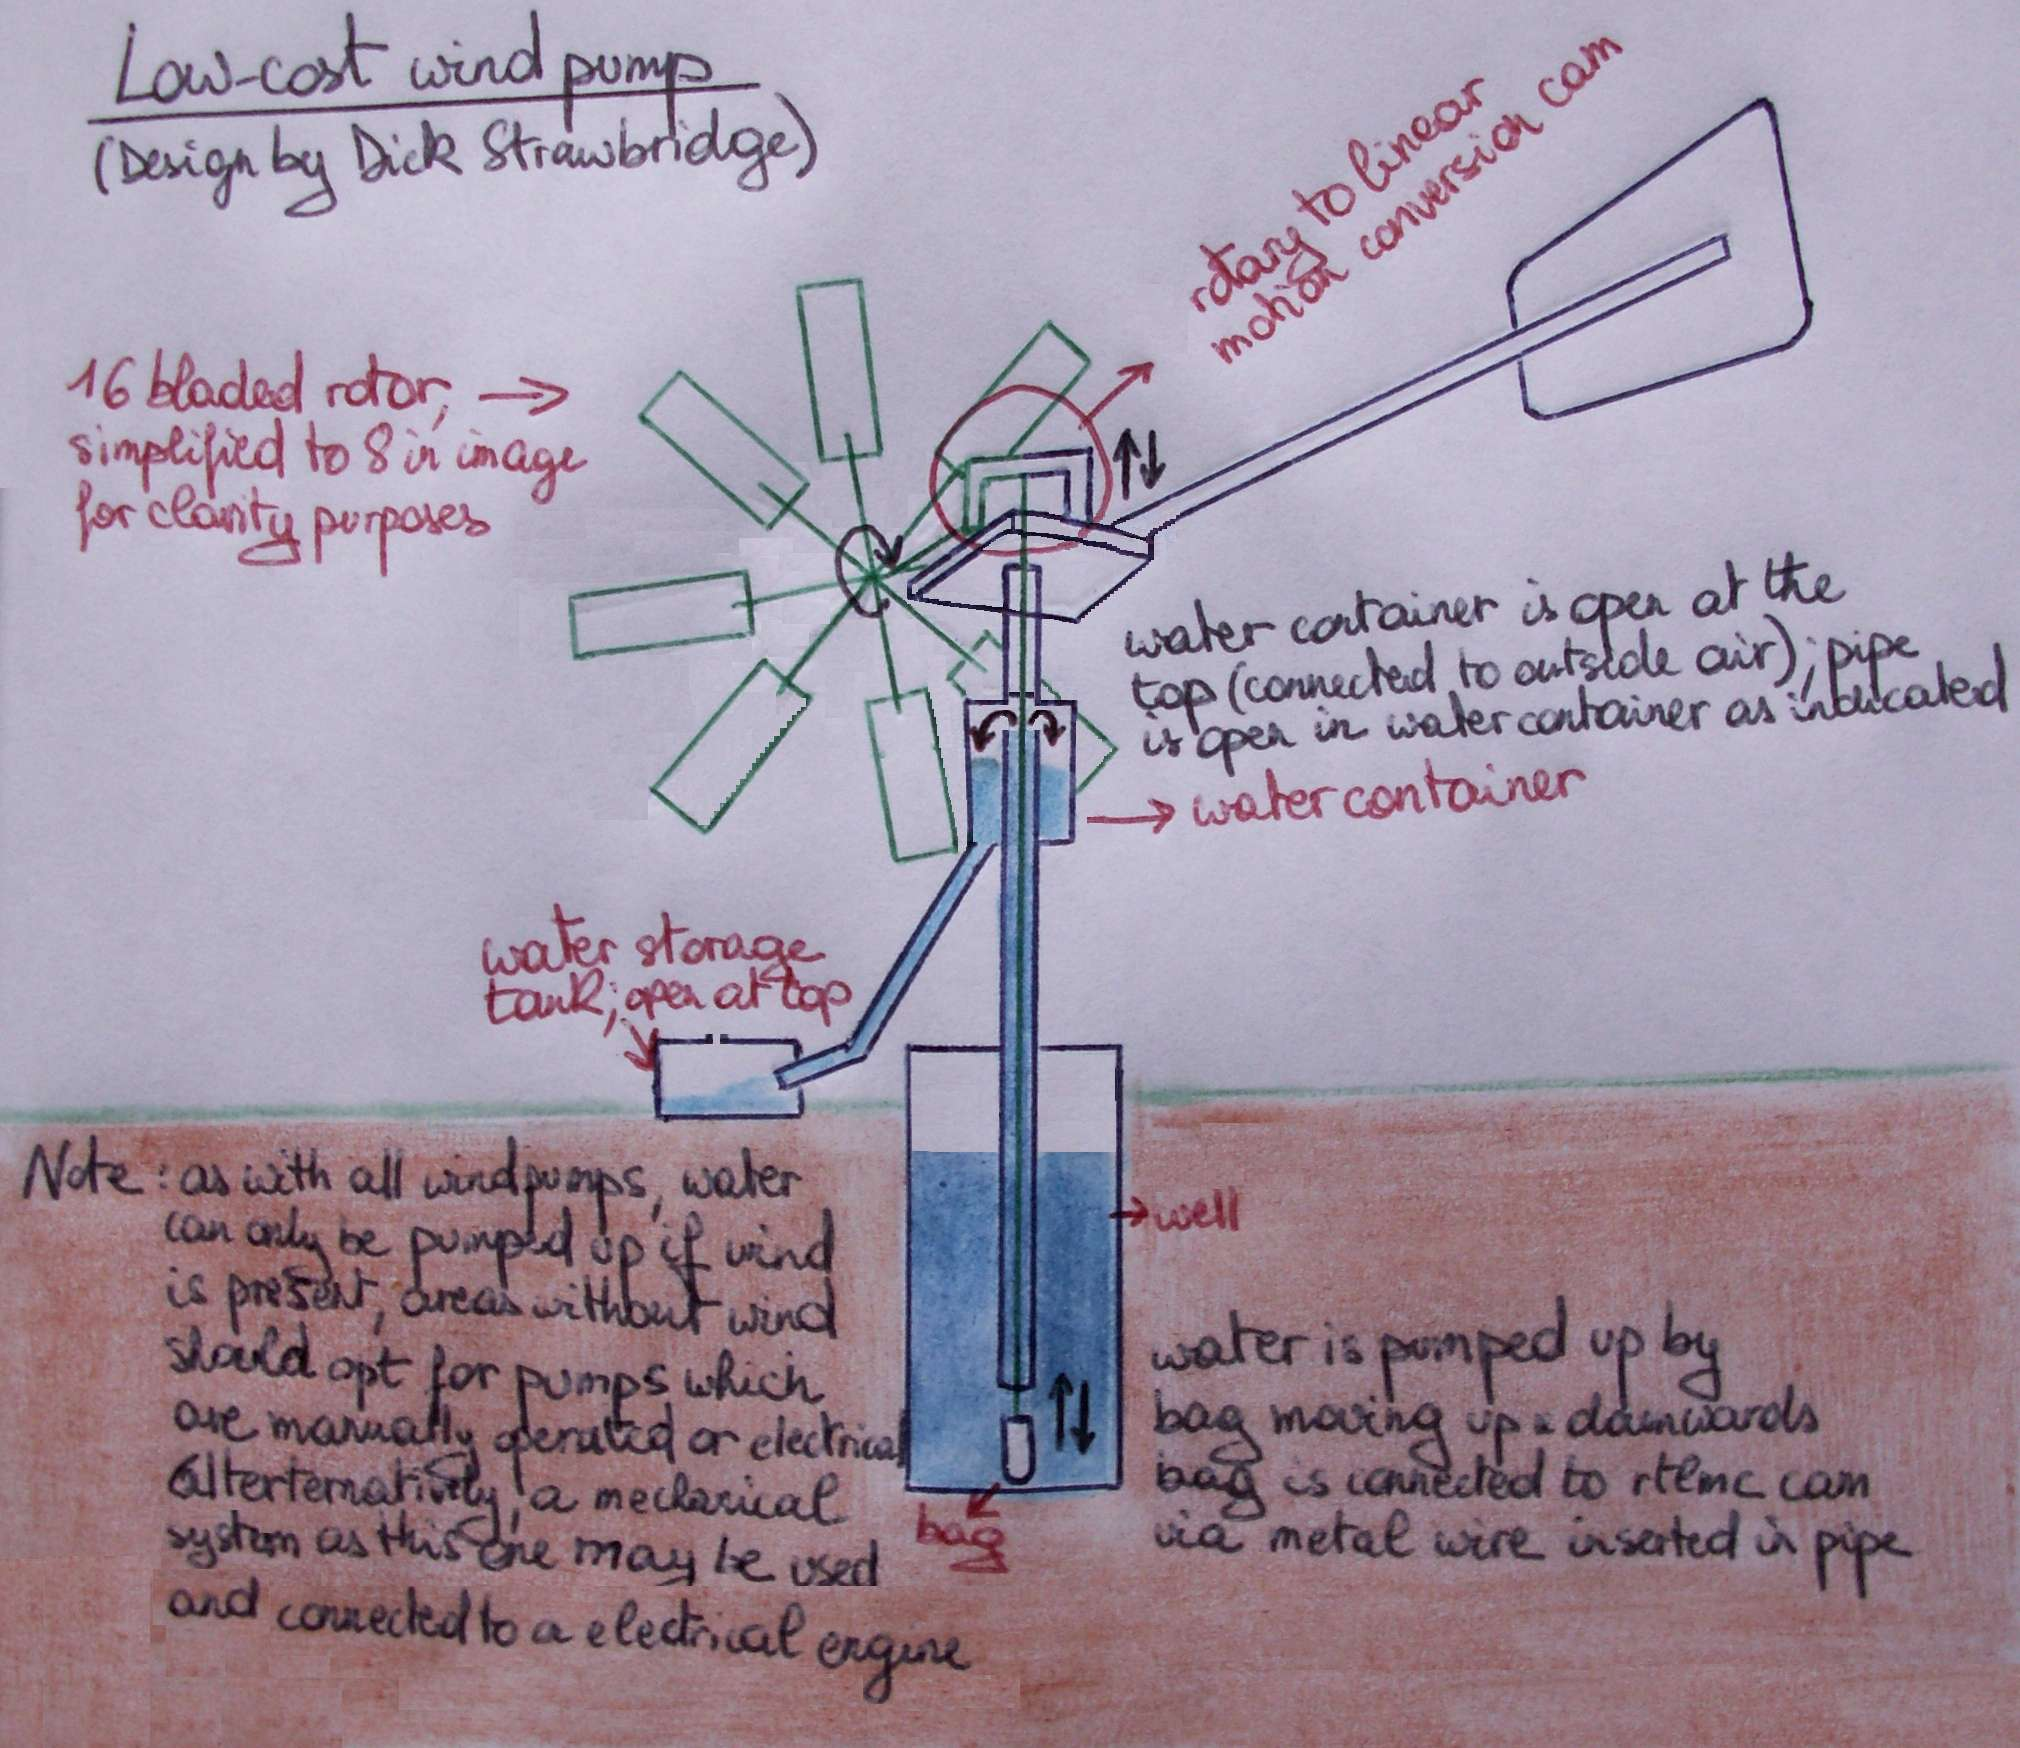 Filelow cost wind pumpg wikimedia commons filelow cost wind pumpg pooptronica Gallery